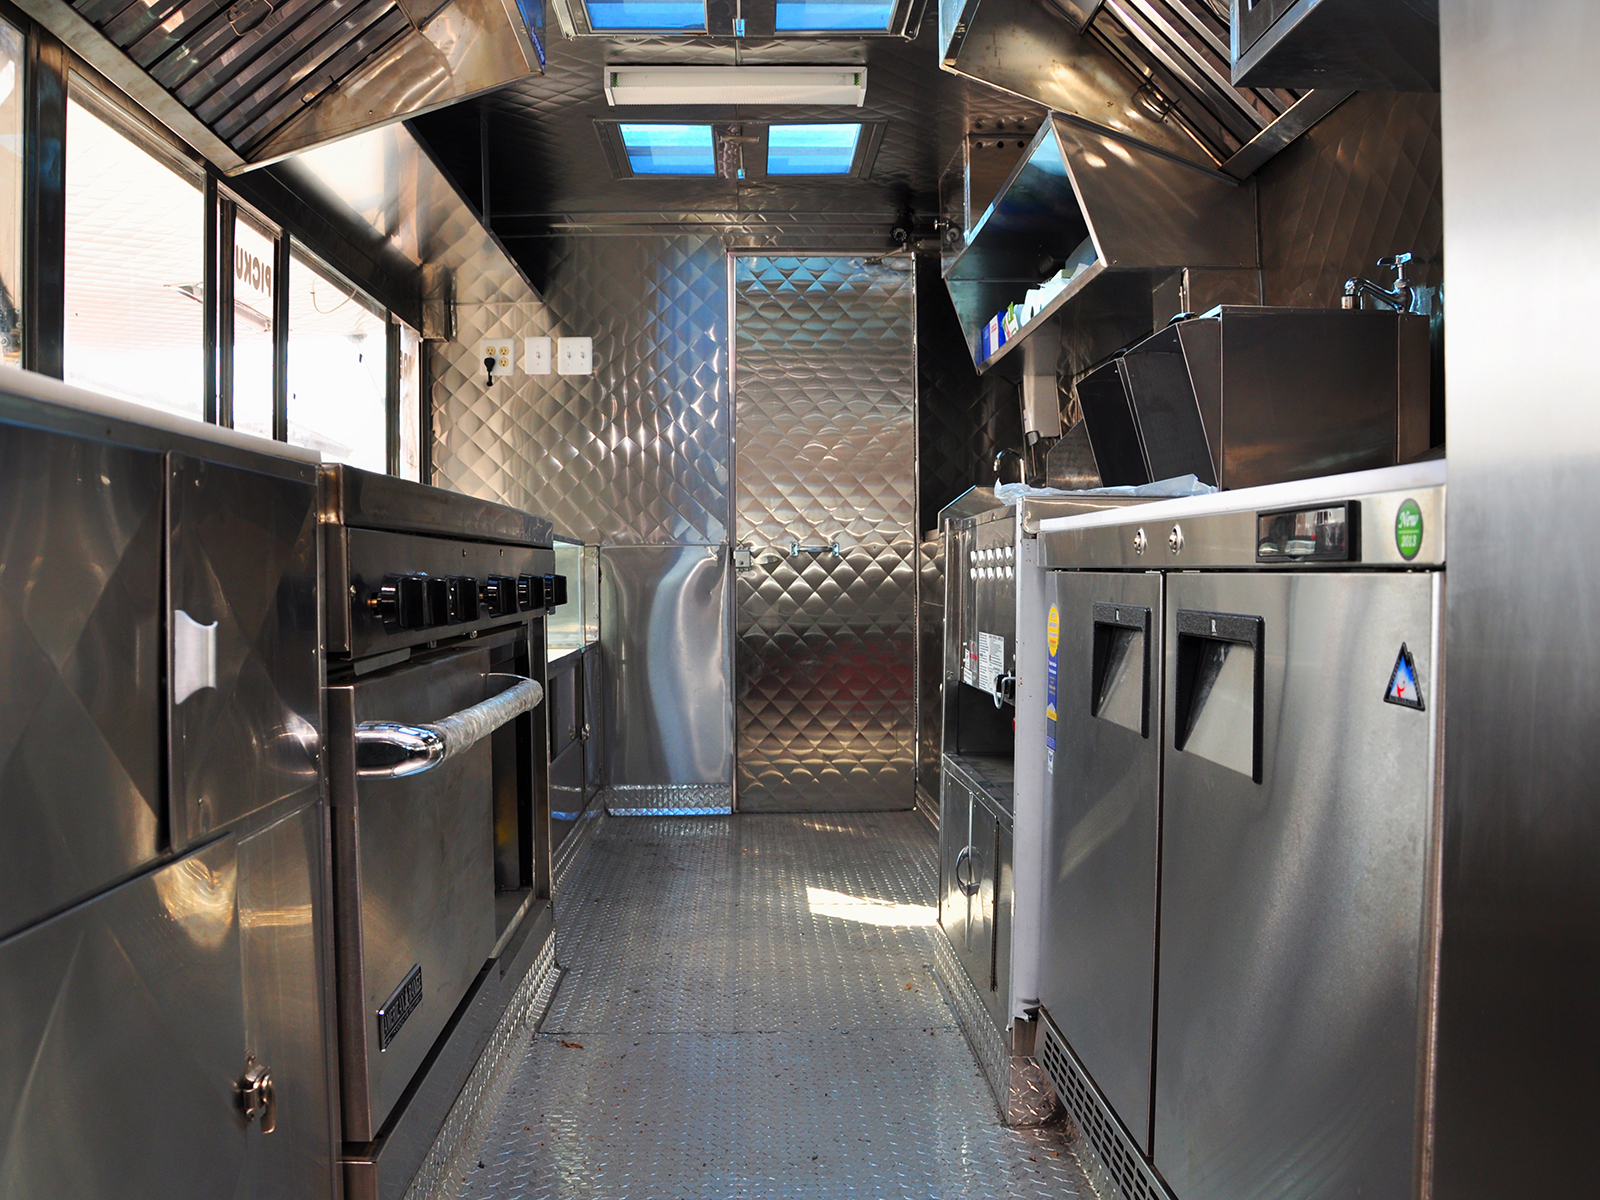 Used Food Truck For Sale >> inside 2 - Kareem Carts Commissary & Manufacturing, Co.